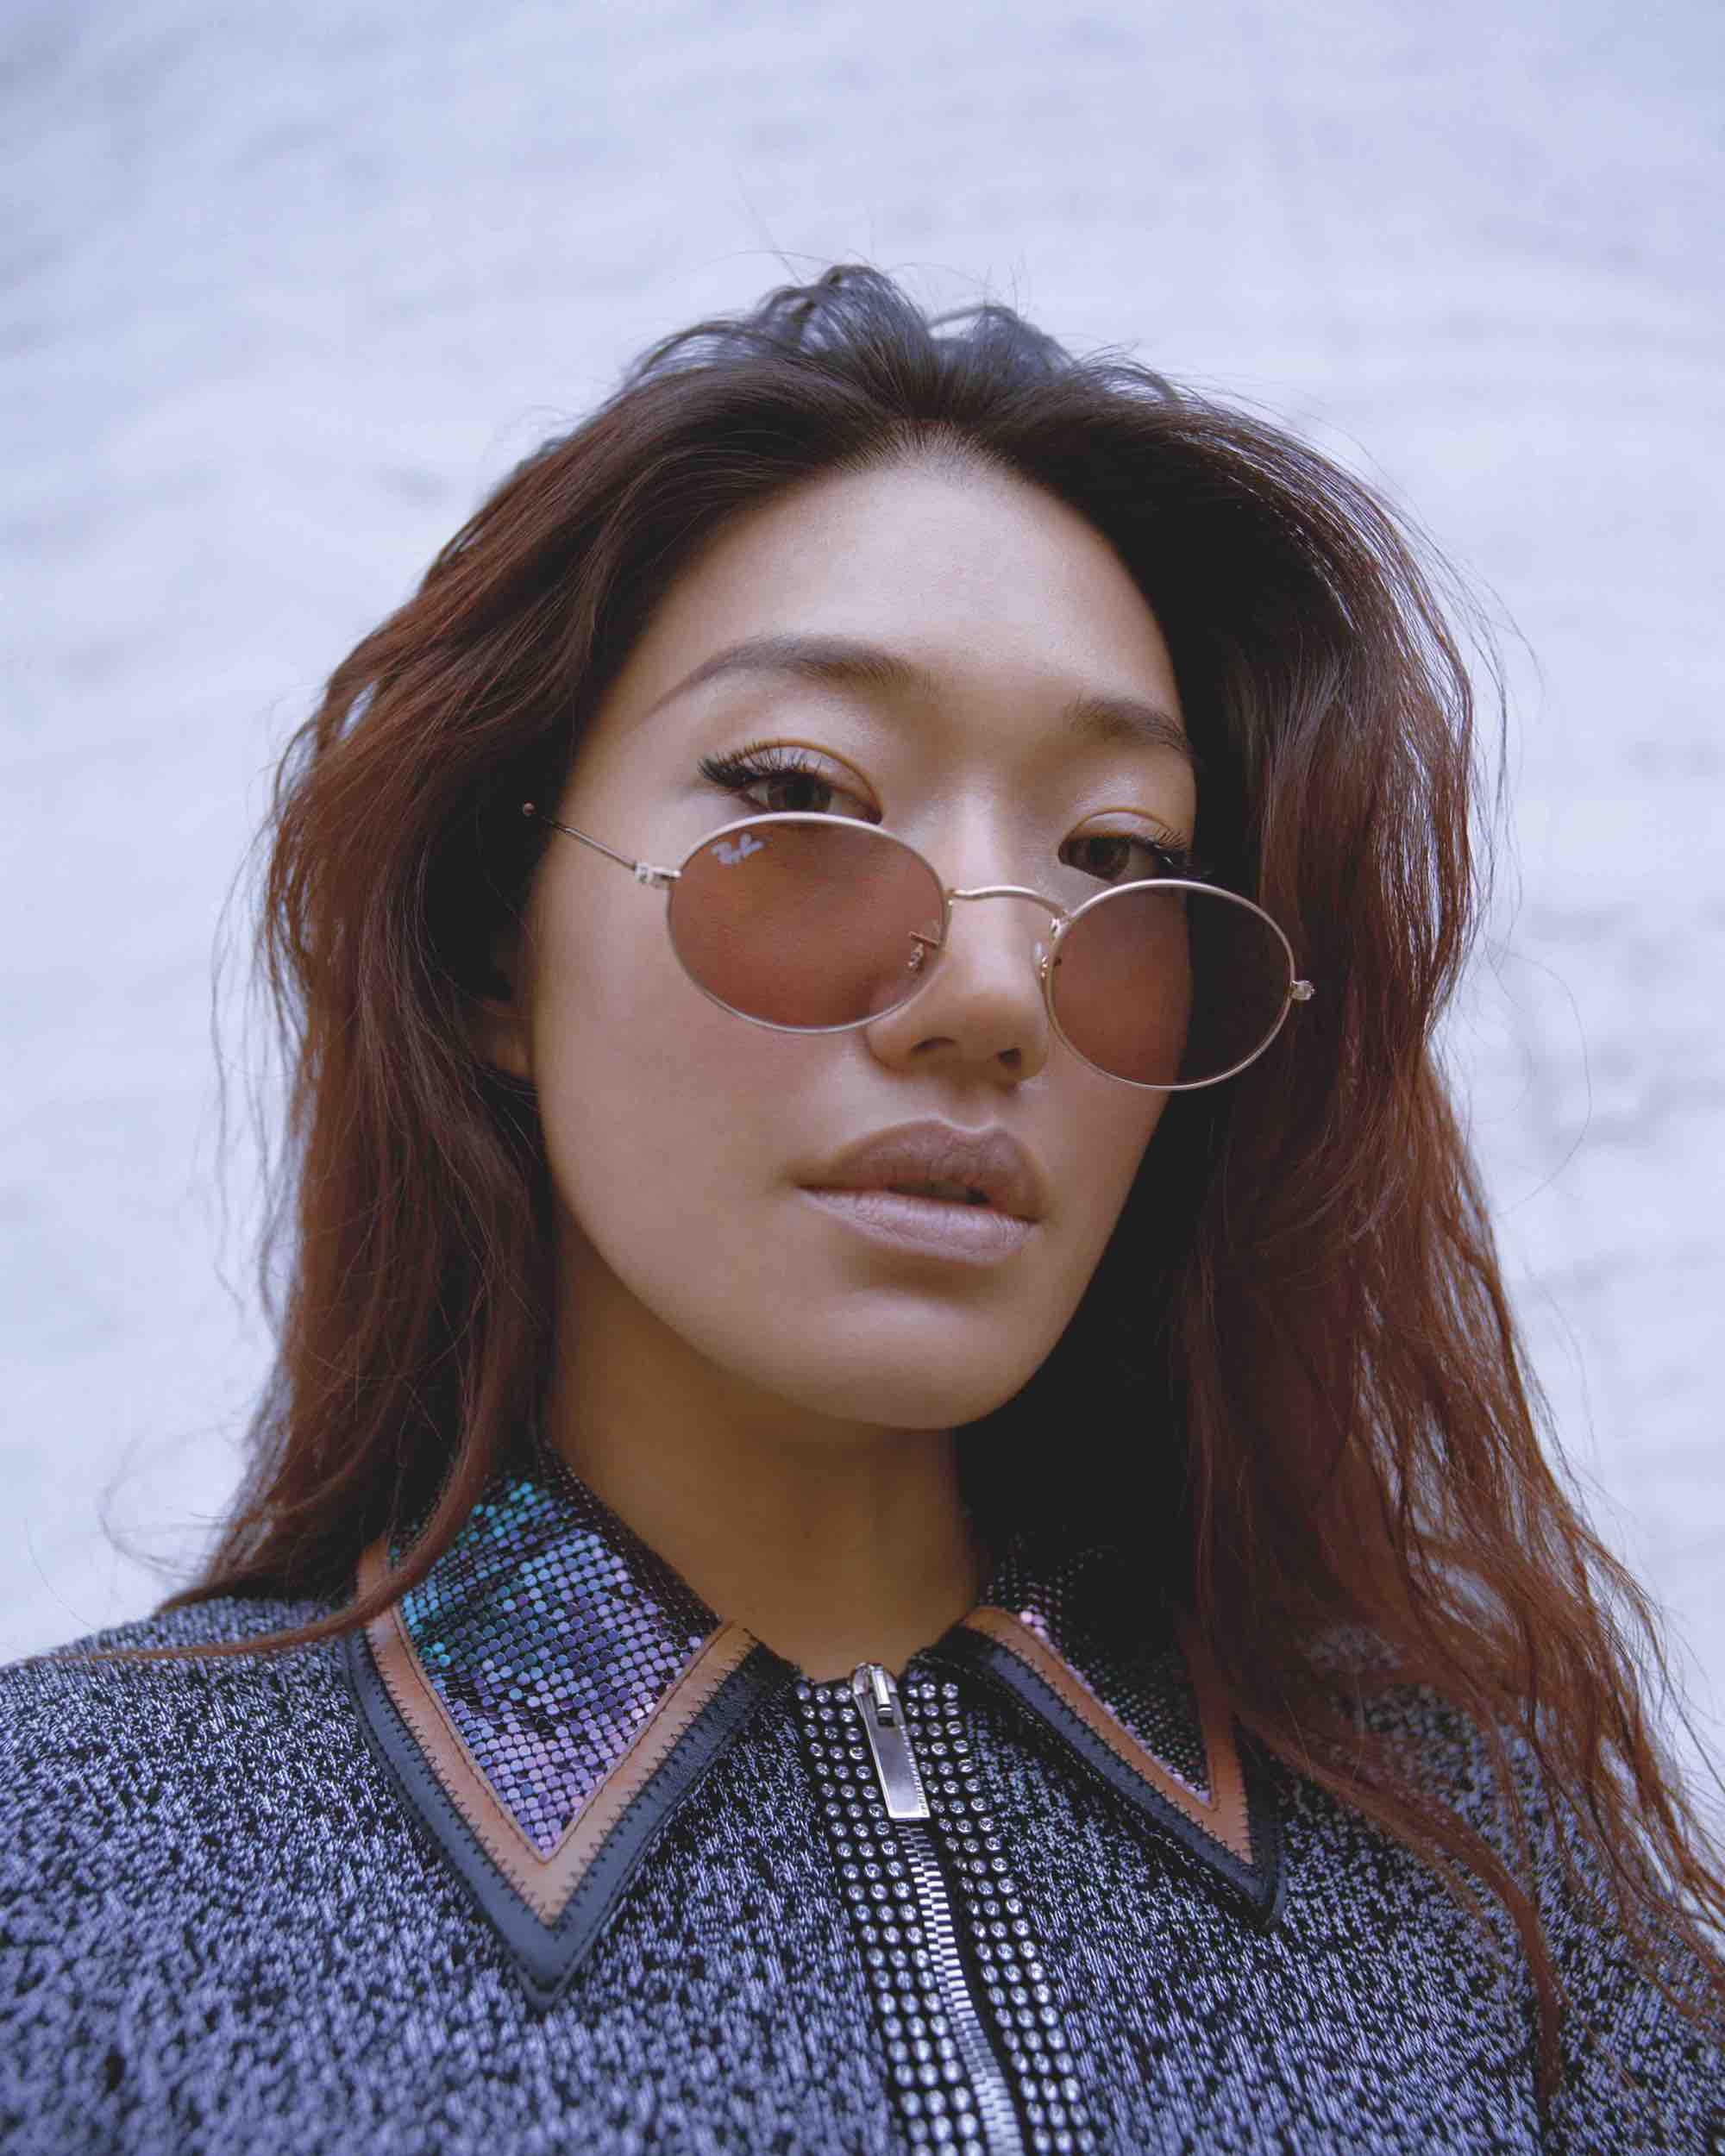 South Korean DJ Peggy Gou on the cover of Rollacoaster Spring/Summer 2019 in collared jacket